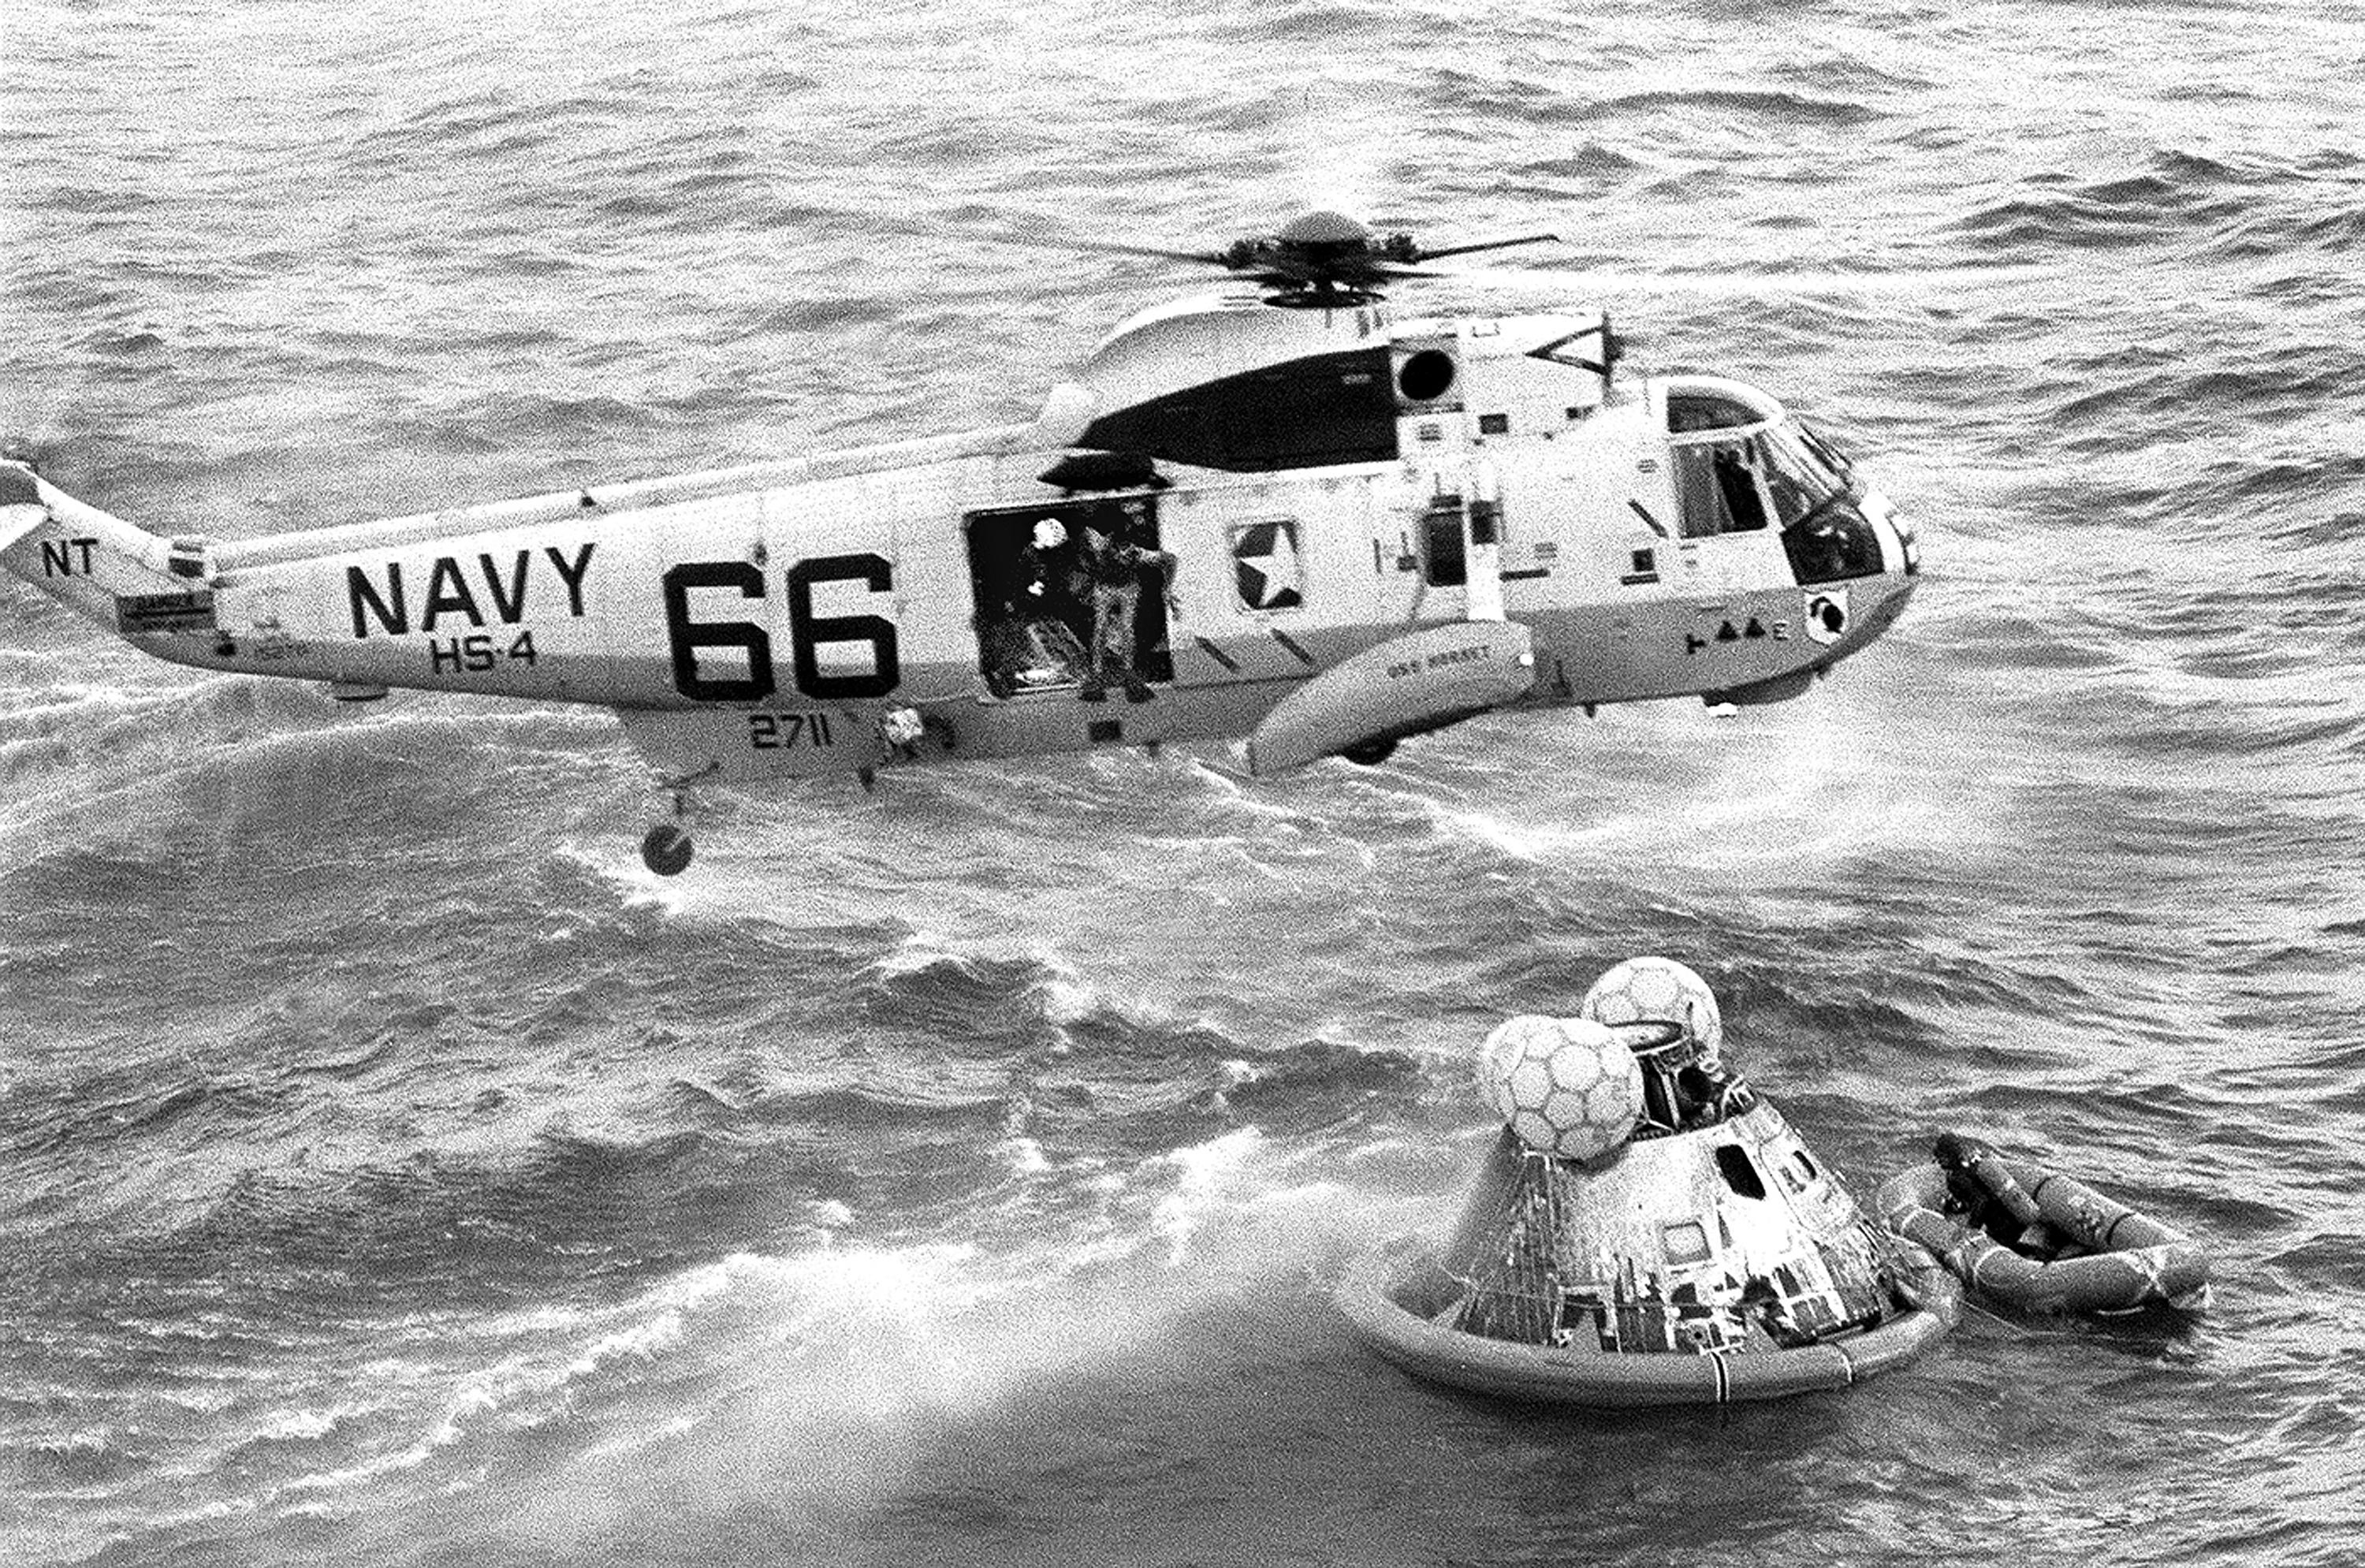 In this July 24, 1969 photo from the U.S. Navy, Navy UDT swimmer Clancy Hatleberg prepares to jump from a helicopter into the water next to the Apollo 11 capsule after it splashed down in the Pacific Ocean, to assist the astronauts into the raft at right. Hatleberg was the first to welcome Apollo 11's moonmen back to Earth. (Milt Putnam/U.S. Navy via AP)